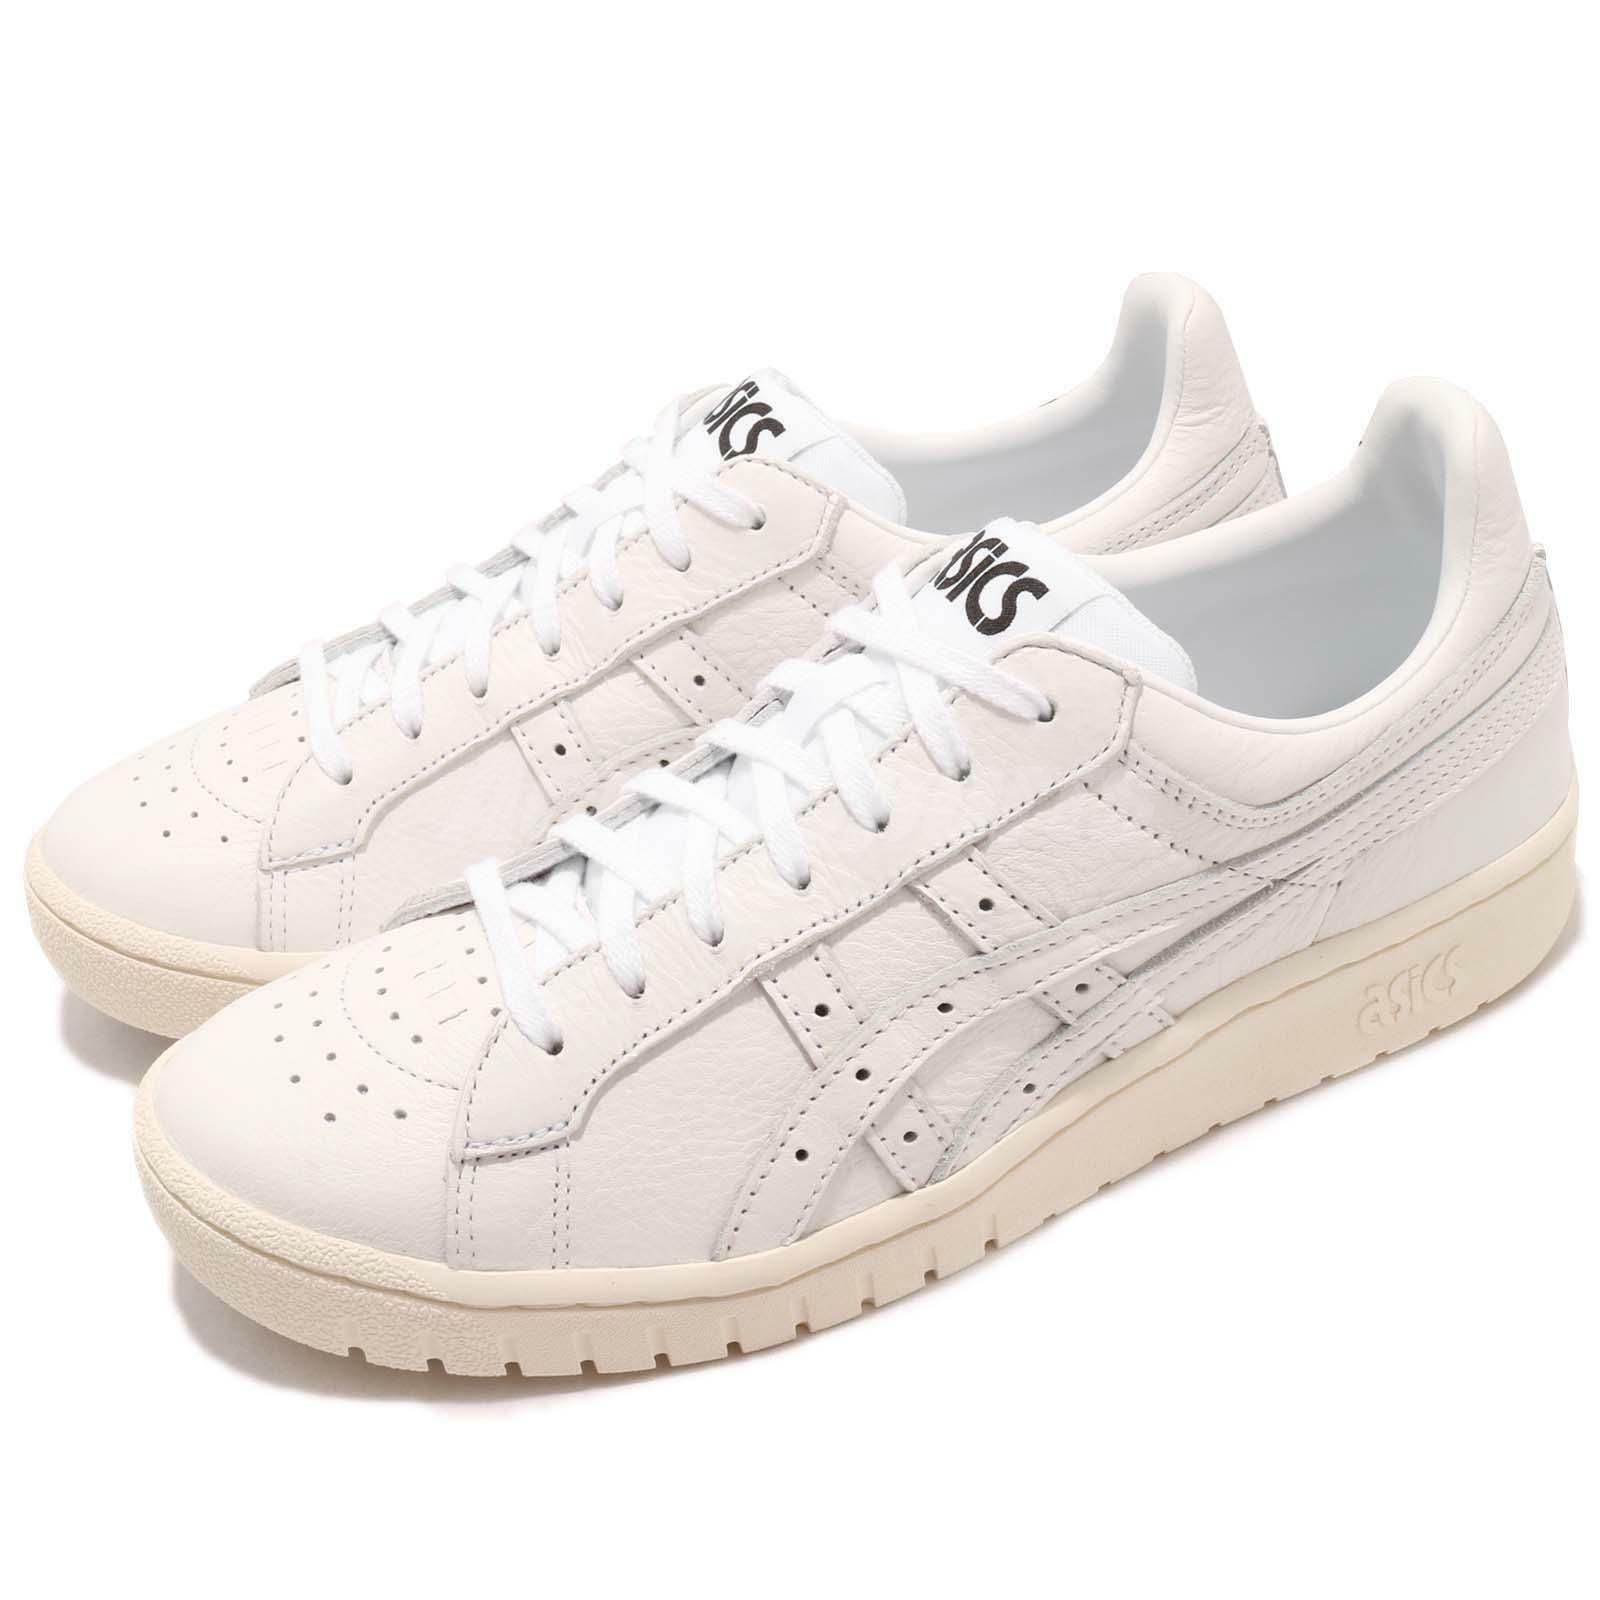 Asics Tiger Gel-PTG Low White Men Classic Basketball shoes Sneakers HL7X0-0101